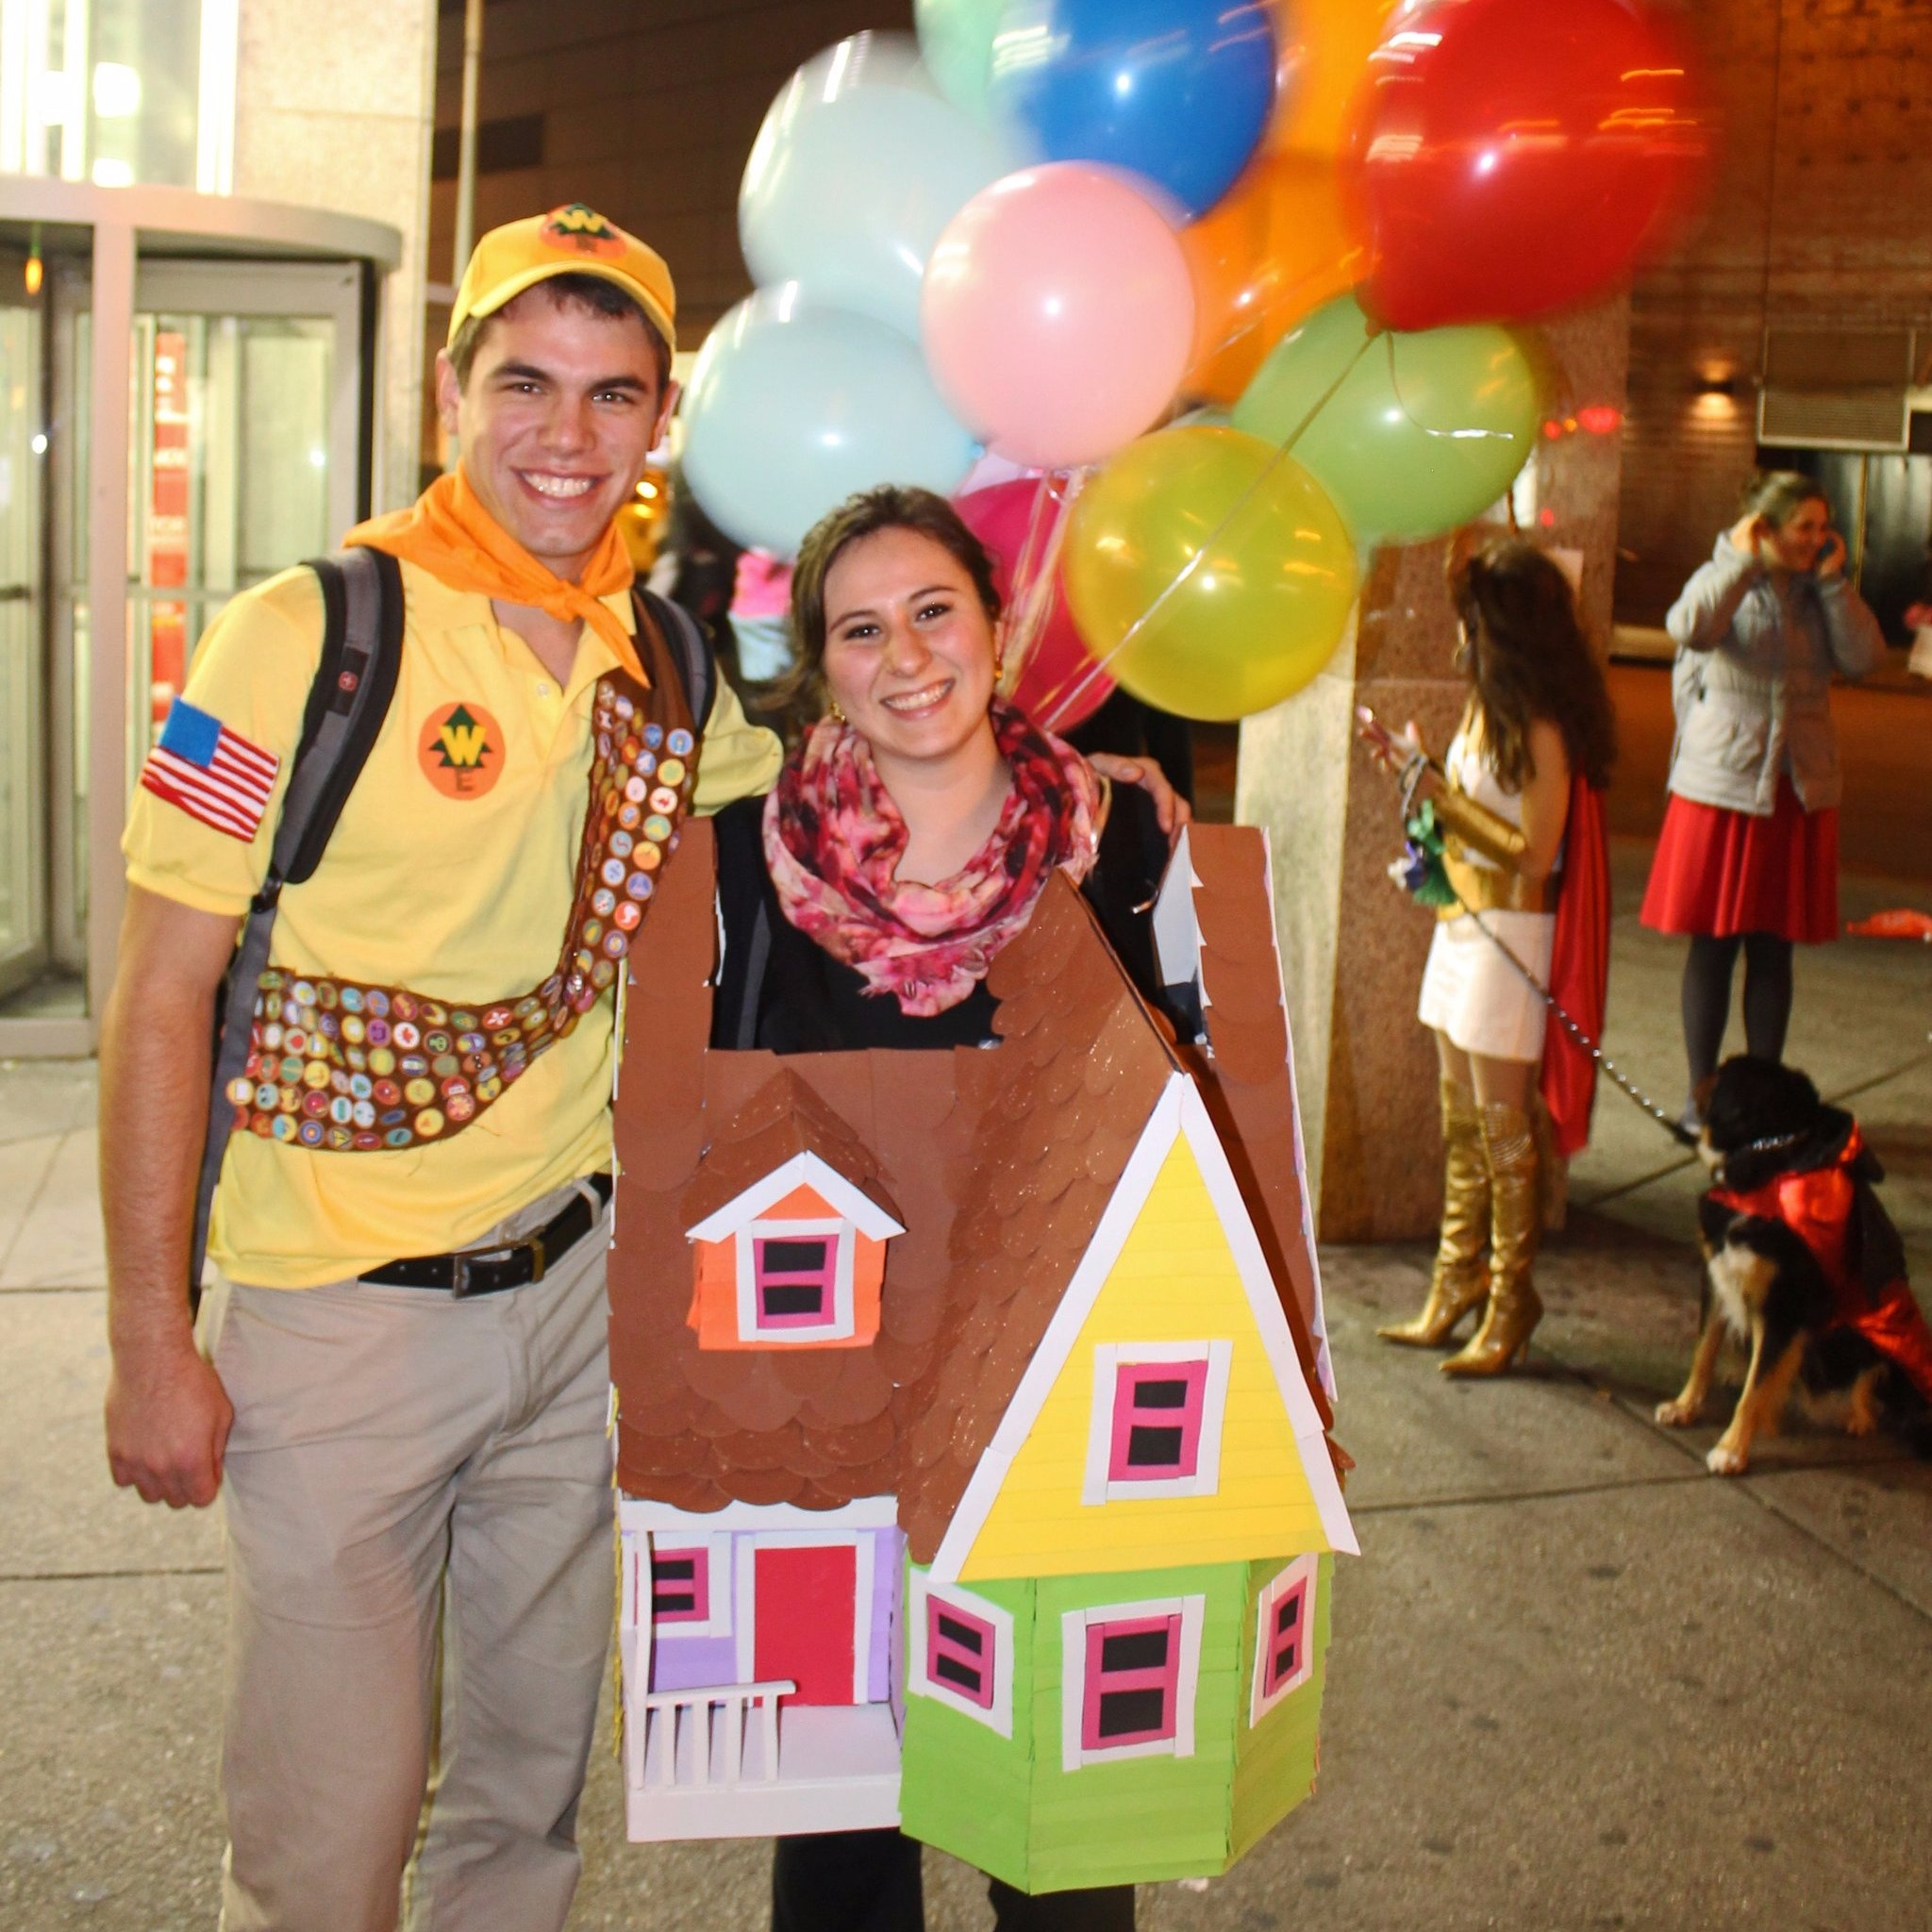 cheap diy couples halloween costumes | popsugar smart living